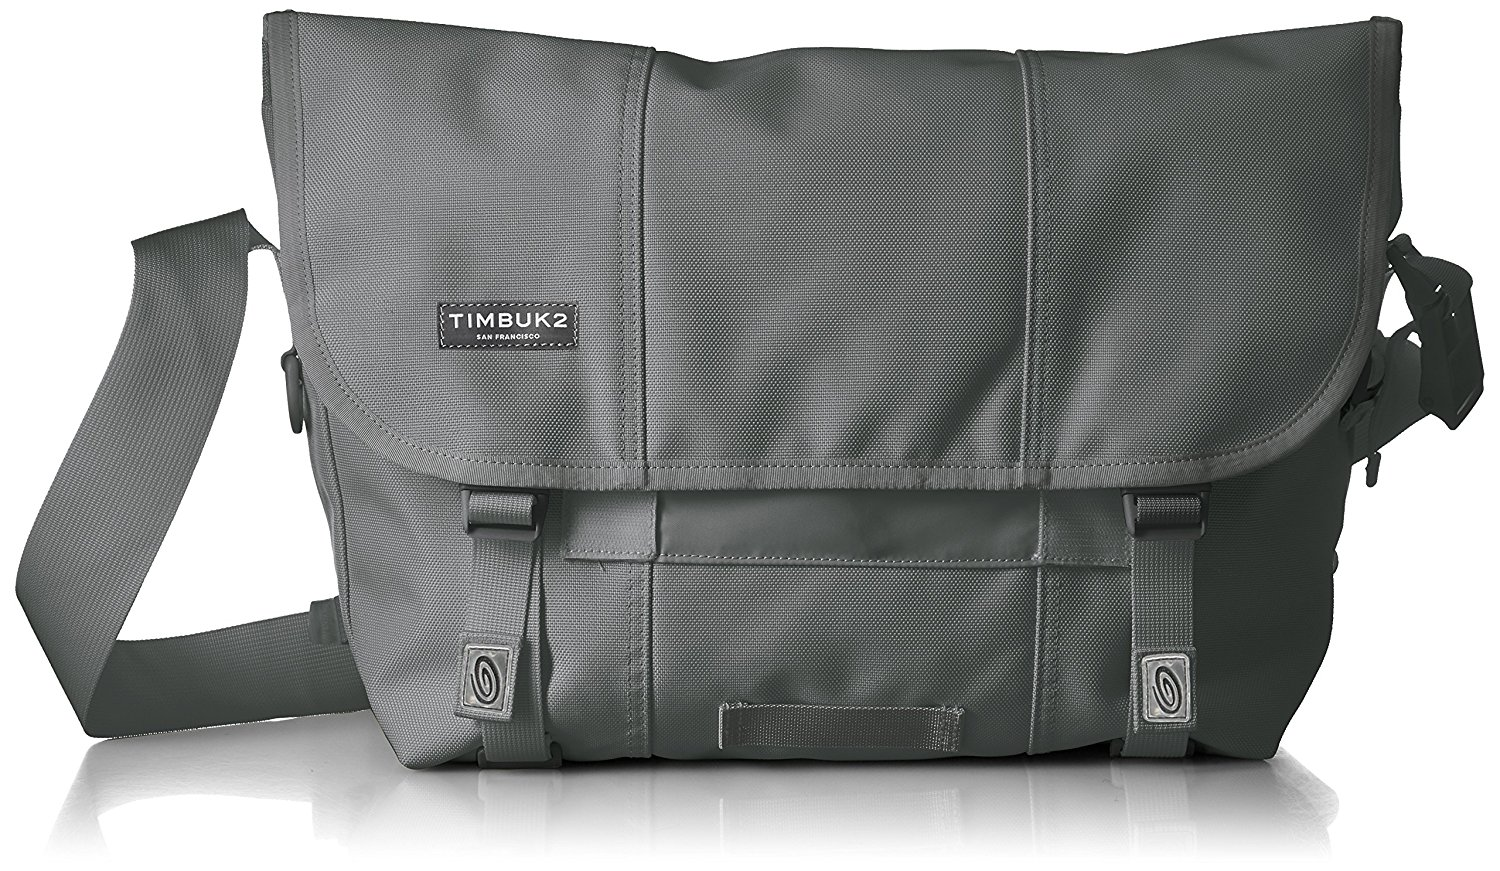 timbuk2 best messenger bag